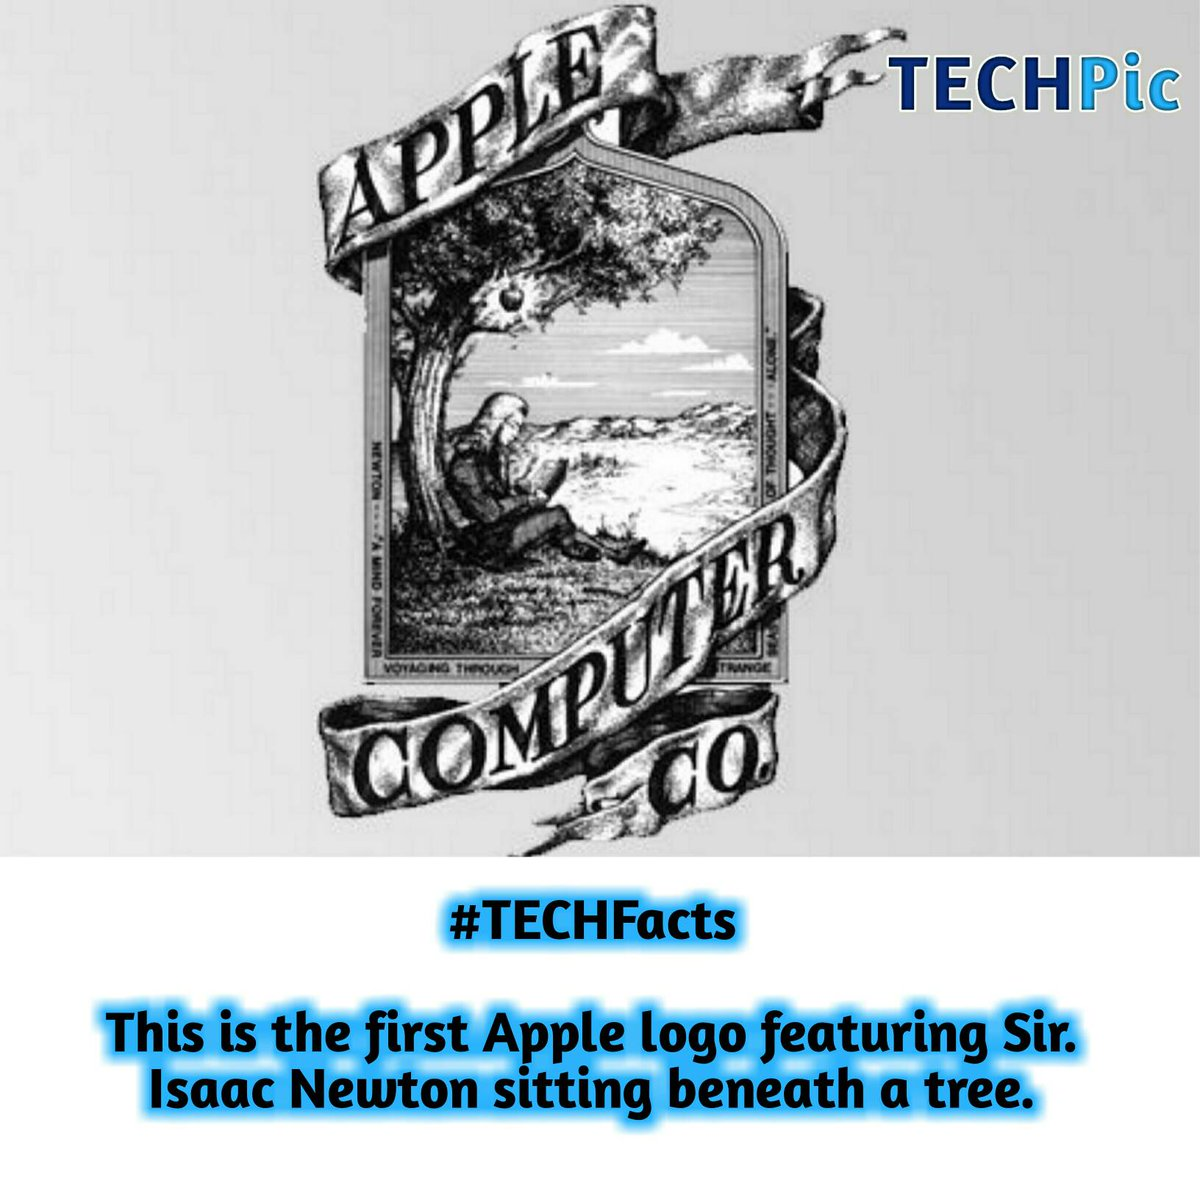 #TECHFacts  This is the first Apple logo featuring Sir. Isaac Newton sitting beneath a tree. pic.twitter.com/COAiQYEkke